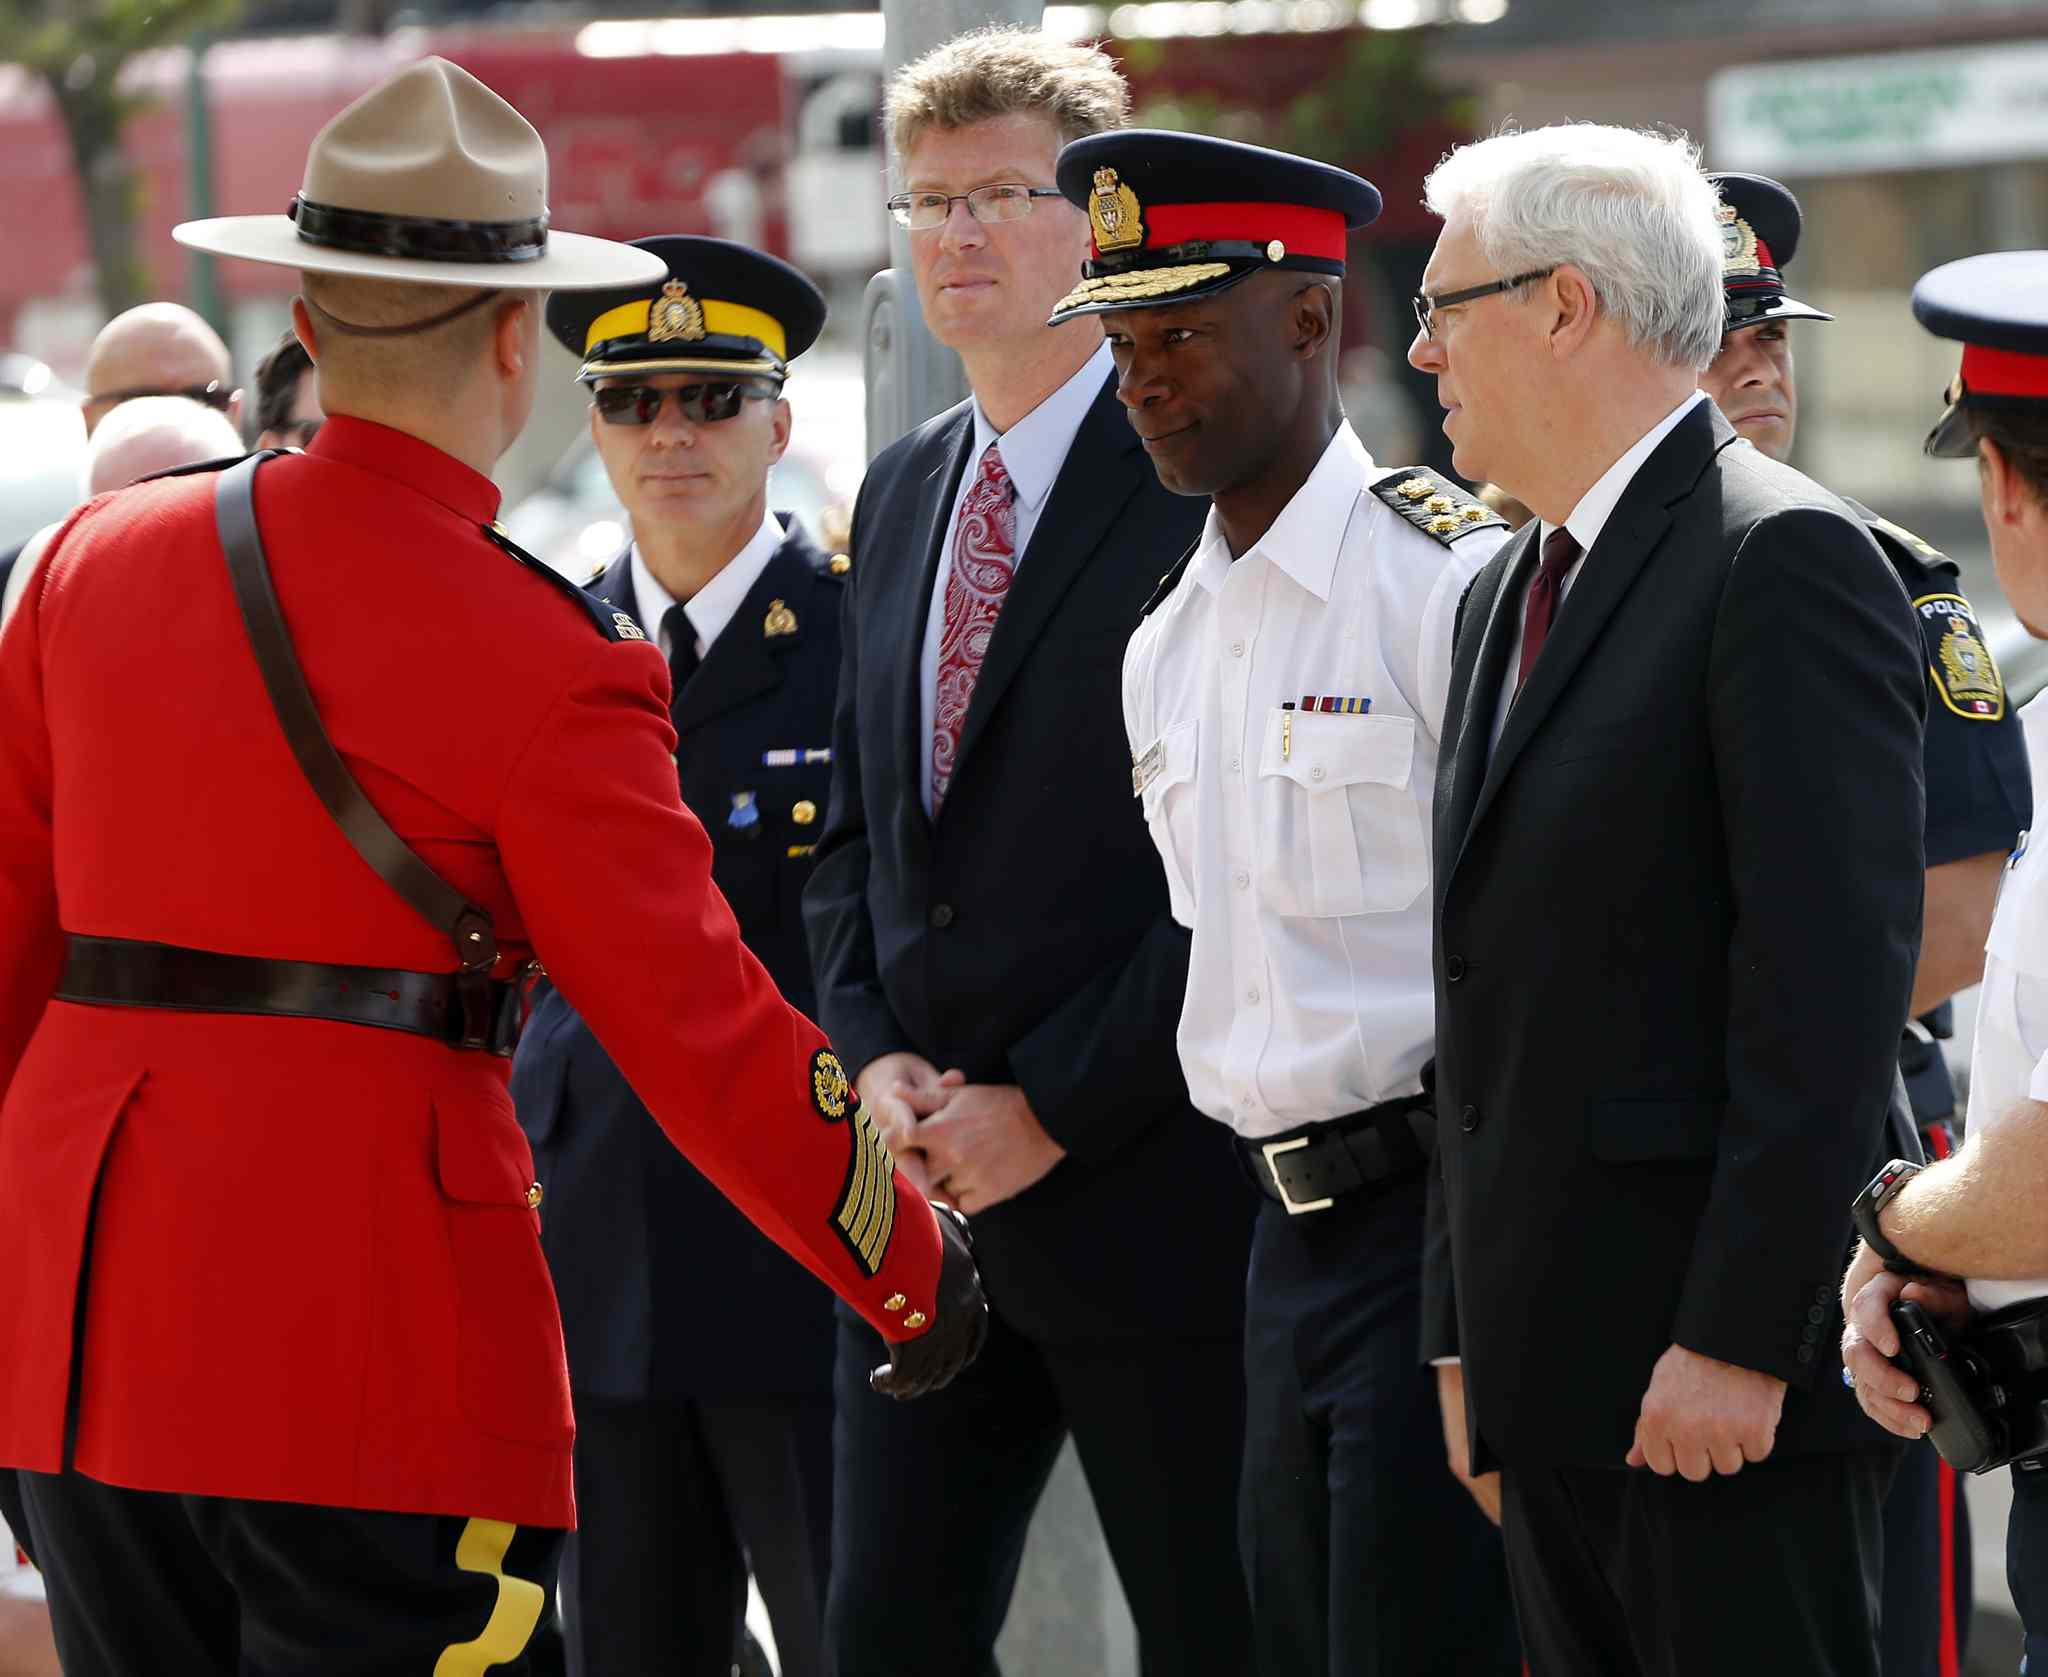 A wreath-laying ceremony on Portage Avenue Tuesday allowed Manitoba's RCMP D Division to honour the three Moncton officers who died following a shootout last week. The ceremony included Attorney General Andrew Swan, left, Winnipeg Police Chief Devon Clunis, centre, and Premier Greg Selinger.